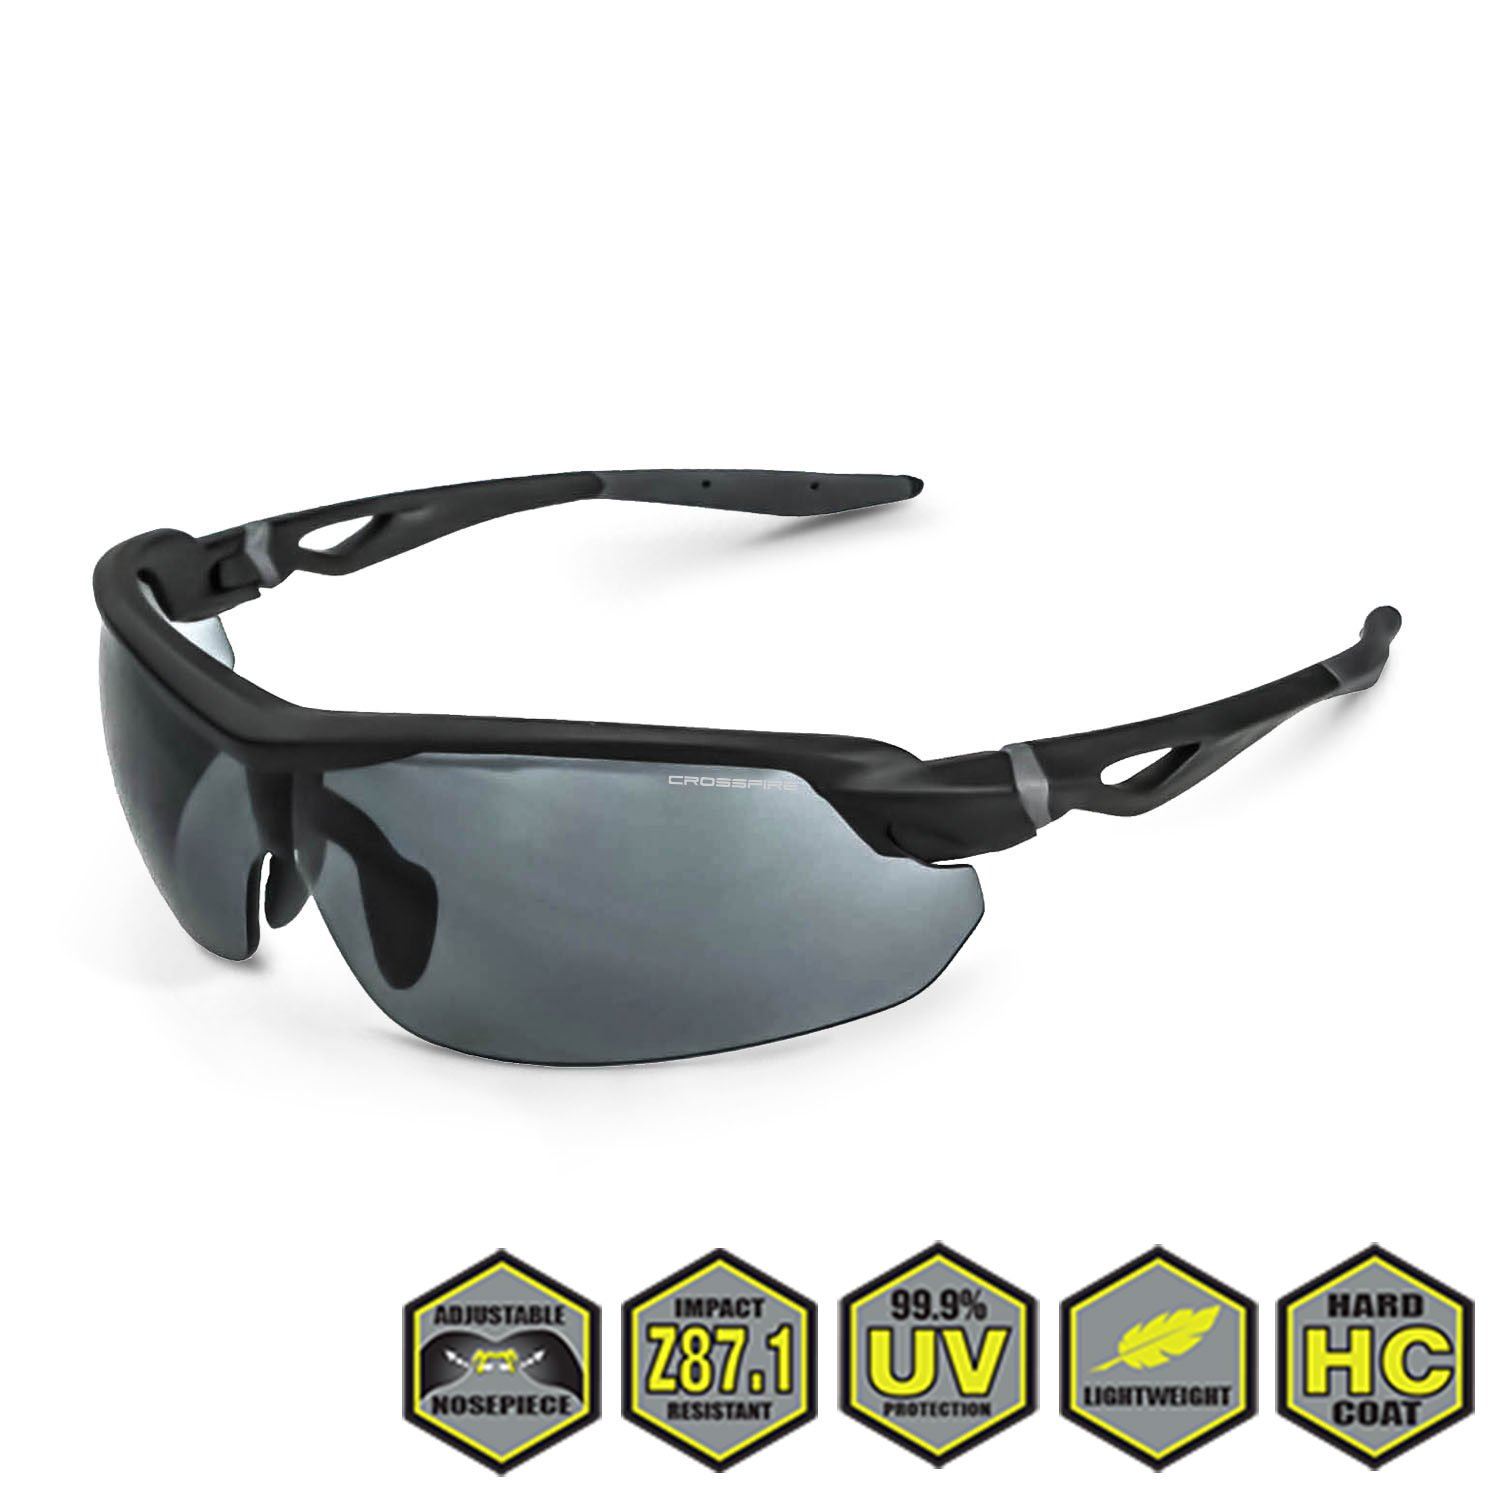 323efc5118 Radians Crossfire Cirrus Safety Glasses